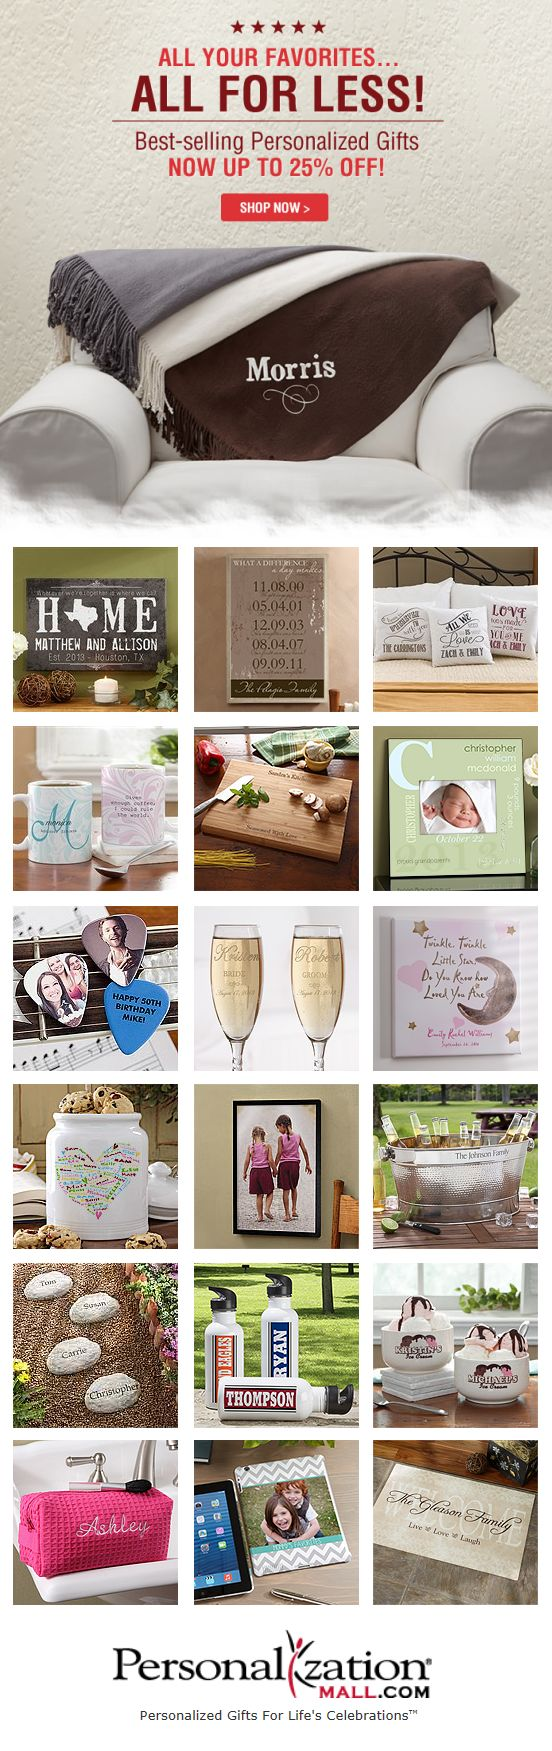 PersonalizationMall is having their HUGE Best Selling Personalized Gifts Sale! All of their best-selling gifts from every department are on sale! They have great wedding gifts, baby gifts, canvas art, kitchen and home gifts, pet gifts, office gifts and so much more! You HAVE to check them out!